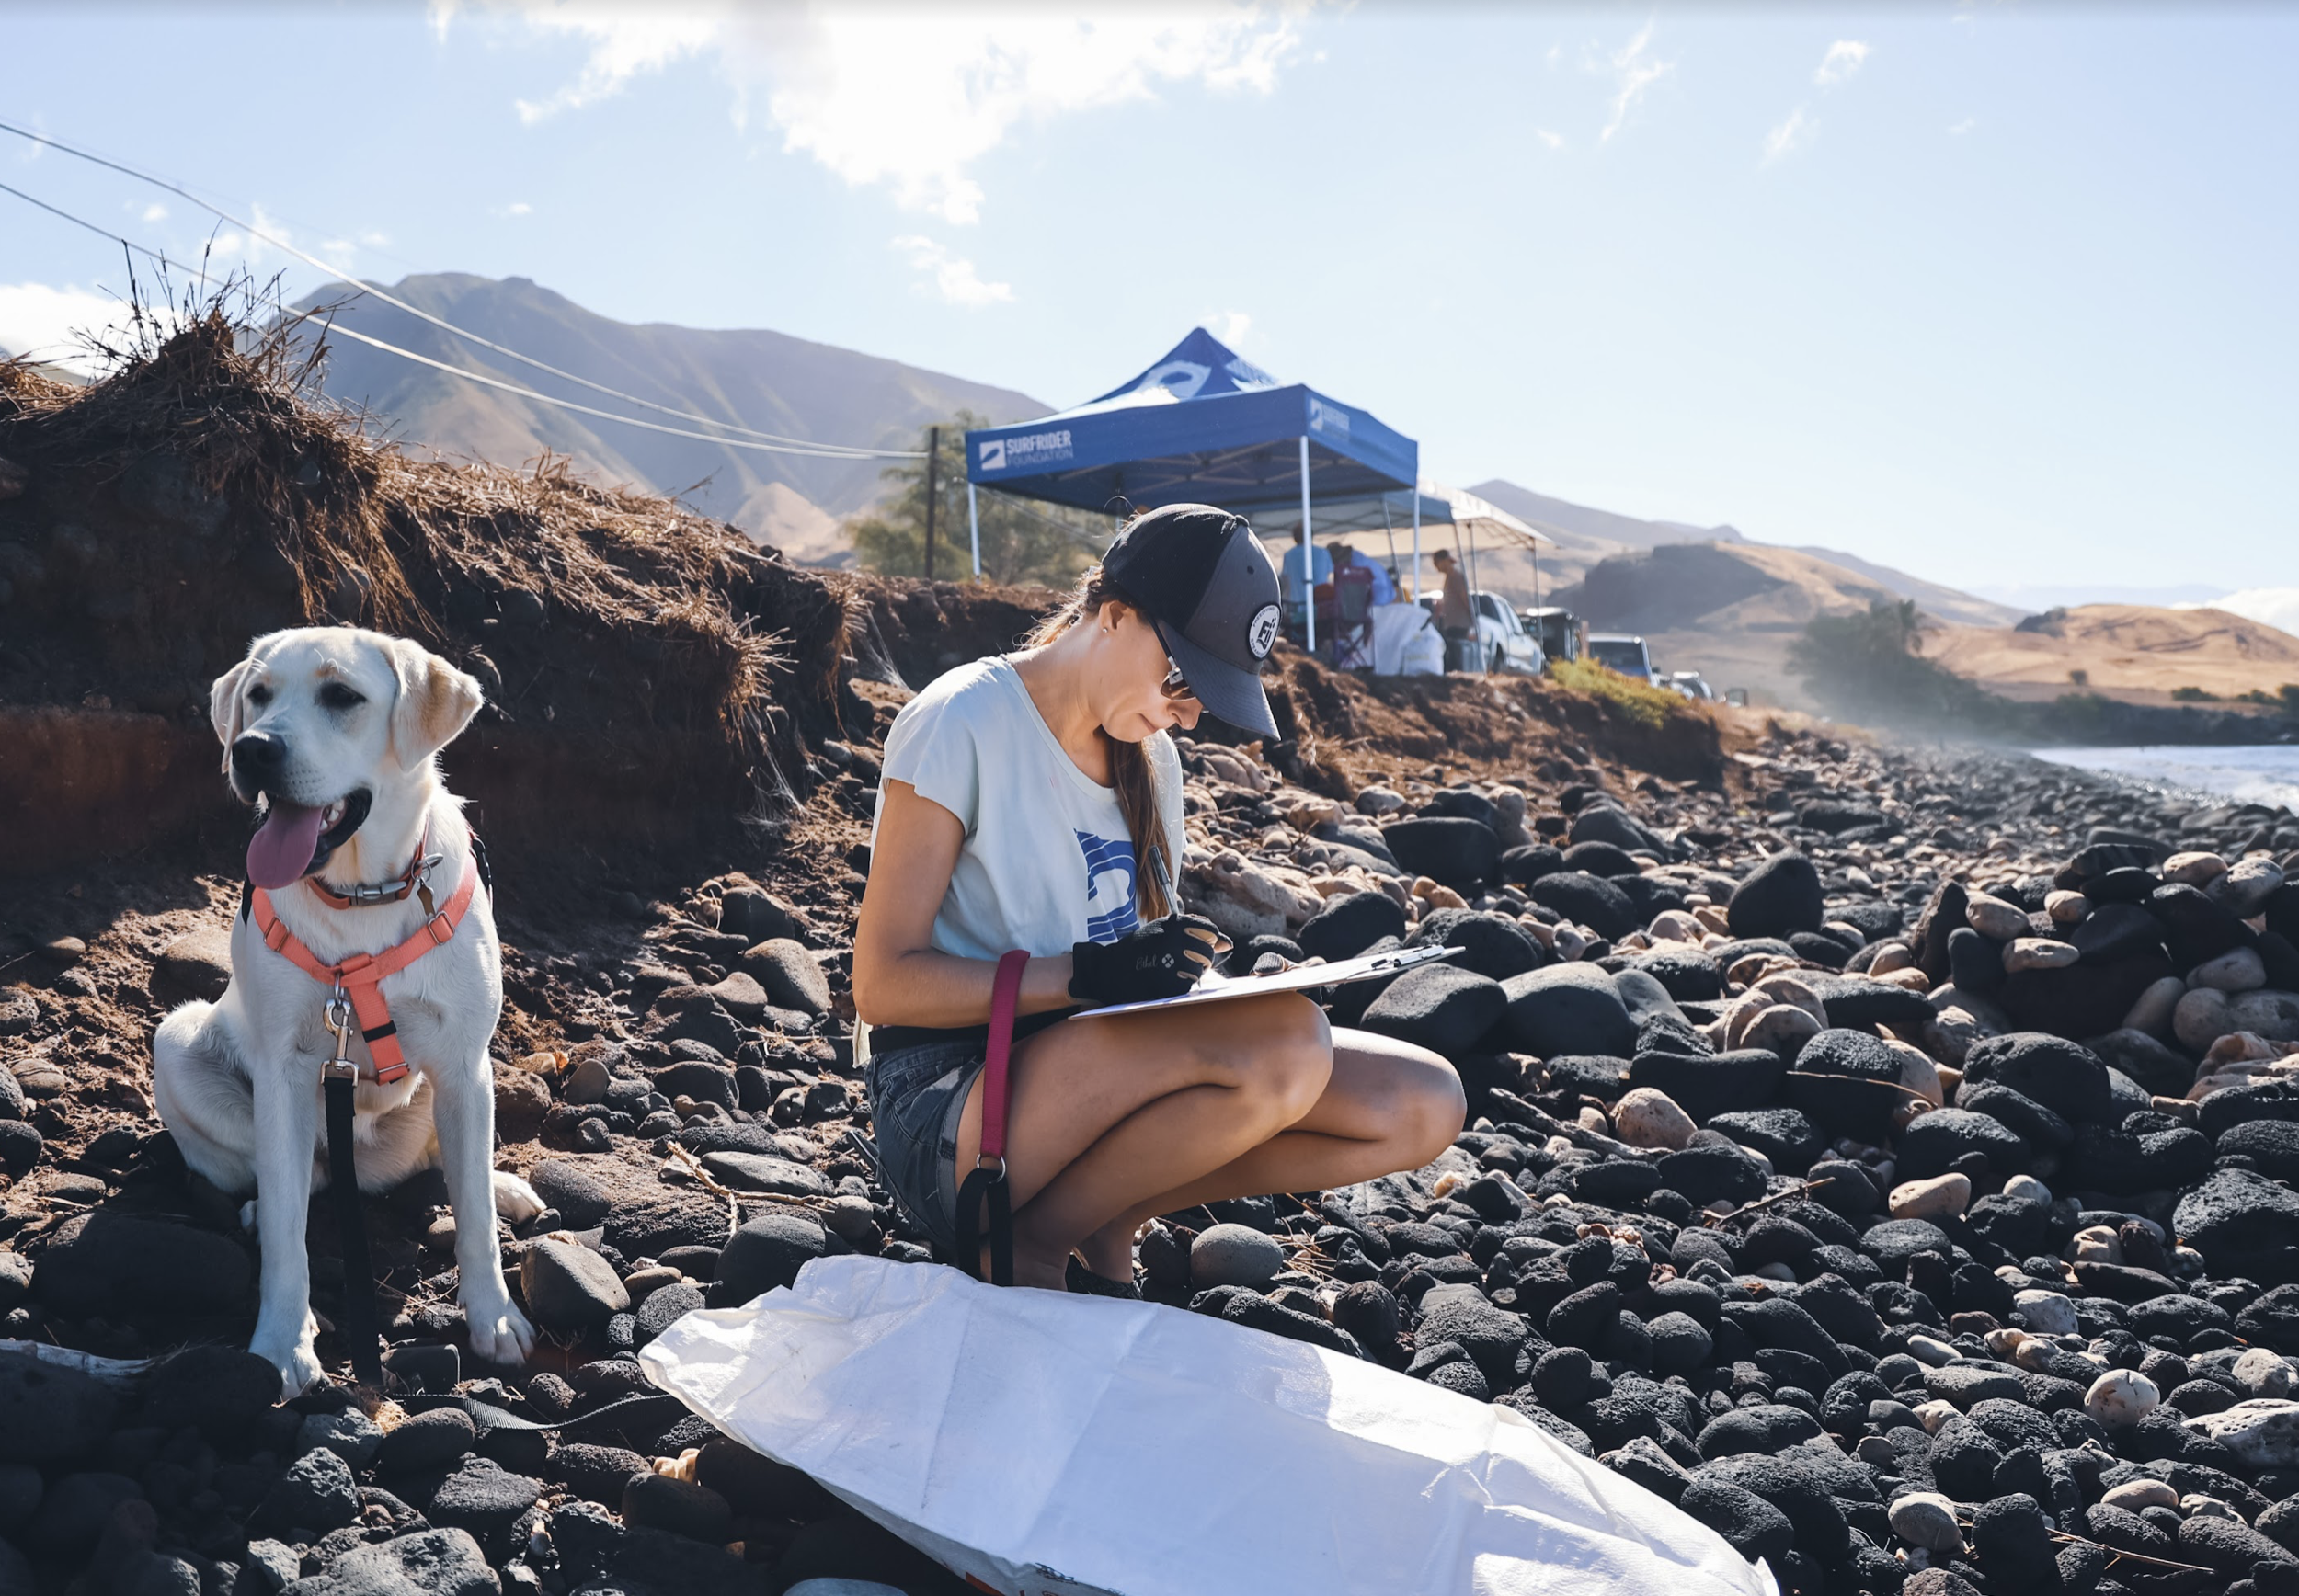 Surfrider Cleans 1,200 Pounds of Trash from West Maui Beach